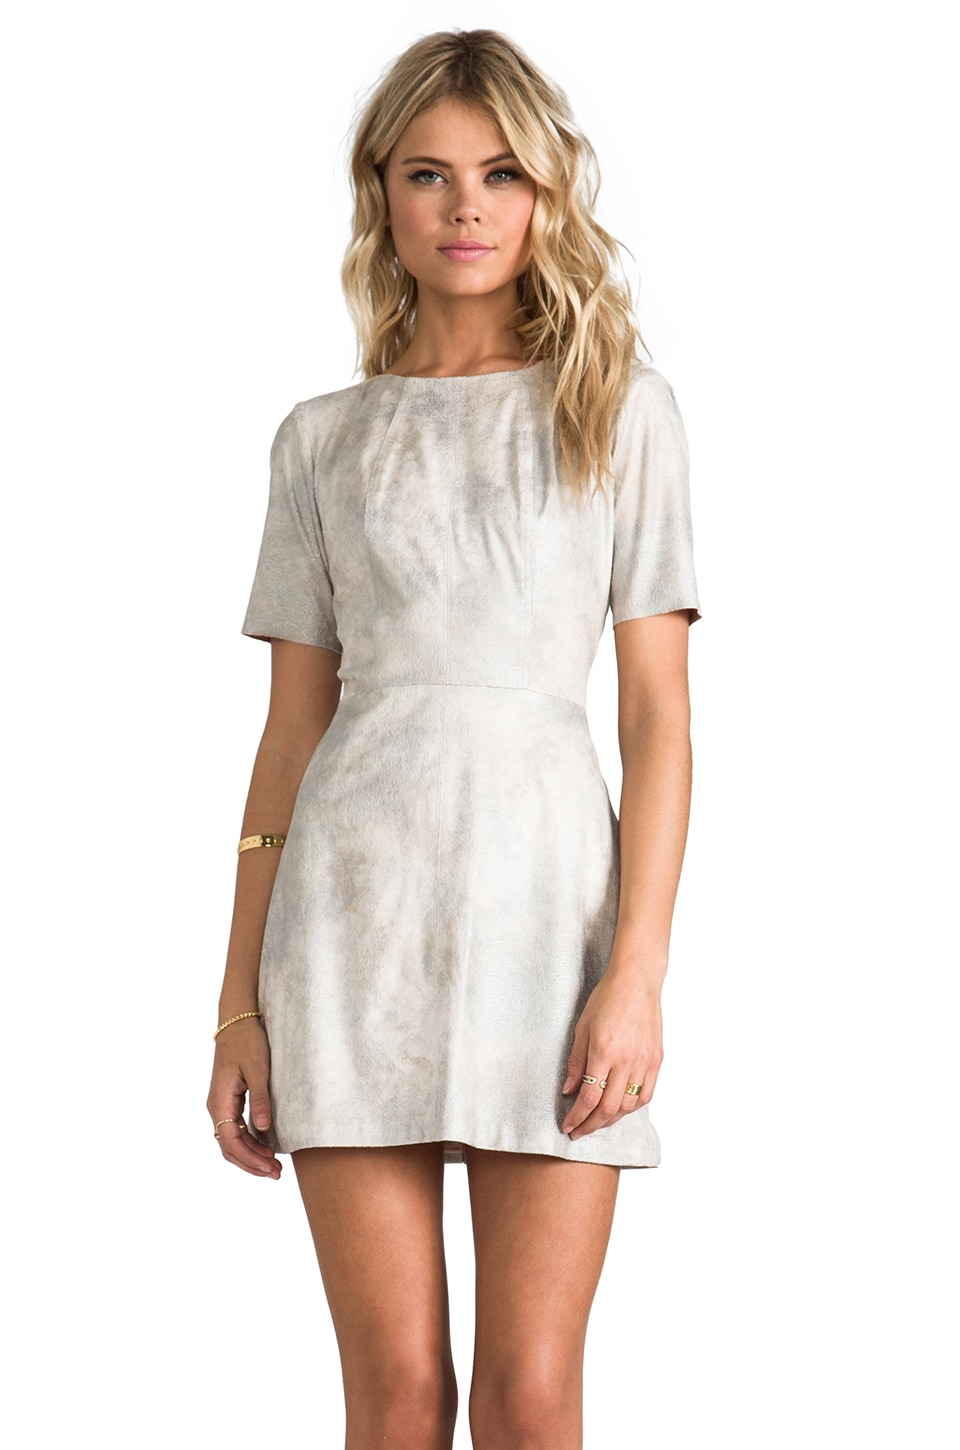 Alexis Roman Dress in Silver Haze